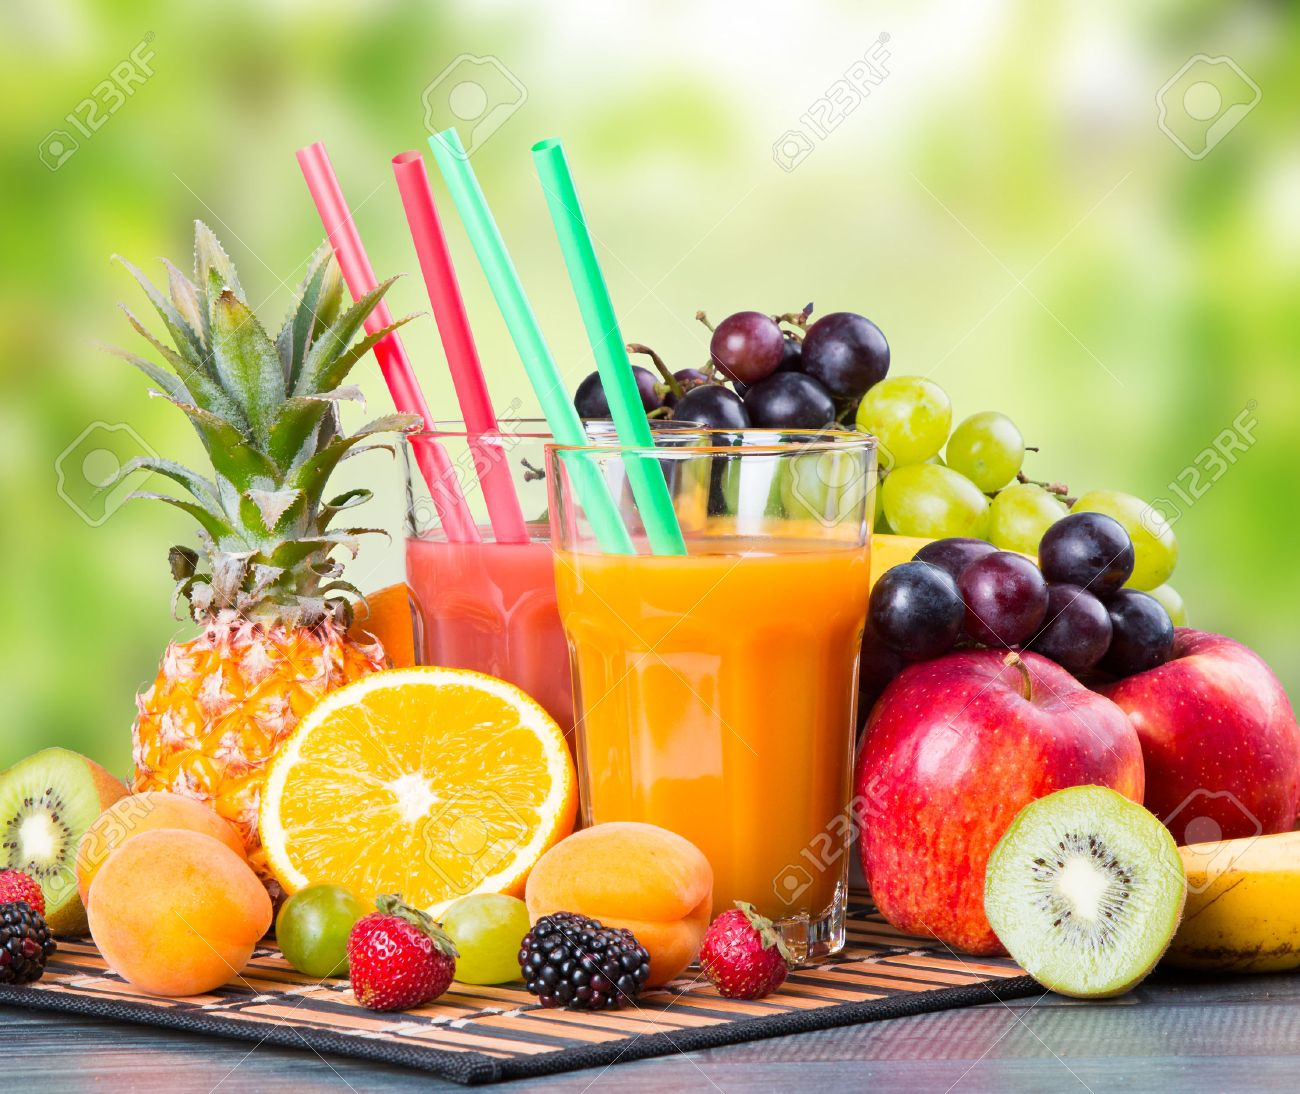 Fresh juice with fruits on wooden table with nature green background - 44154183